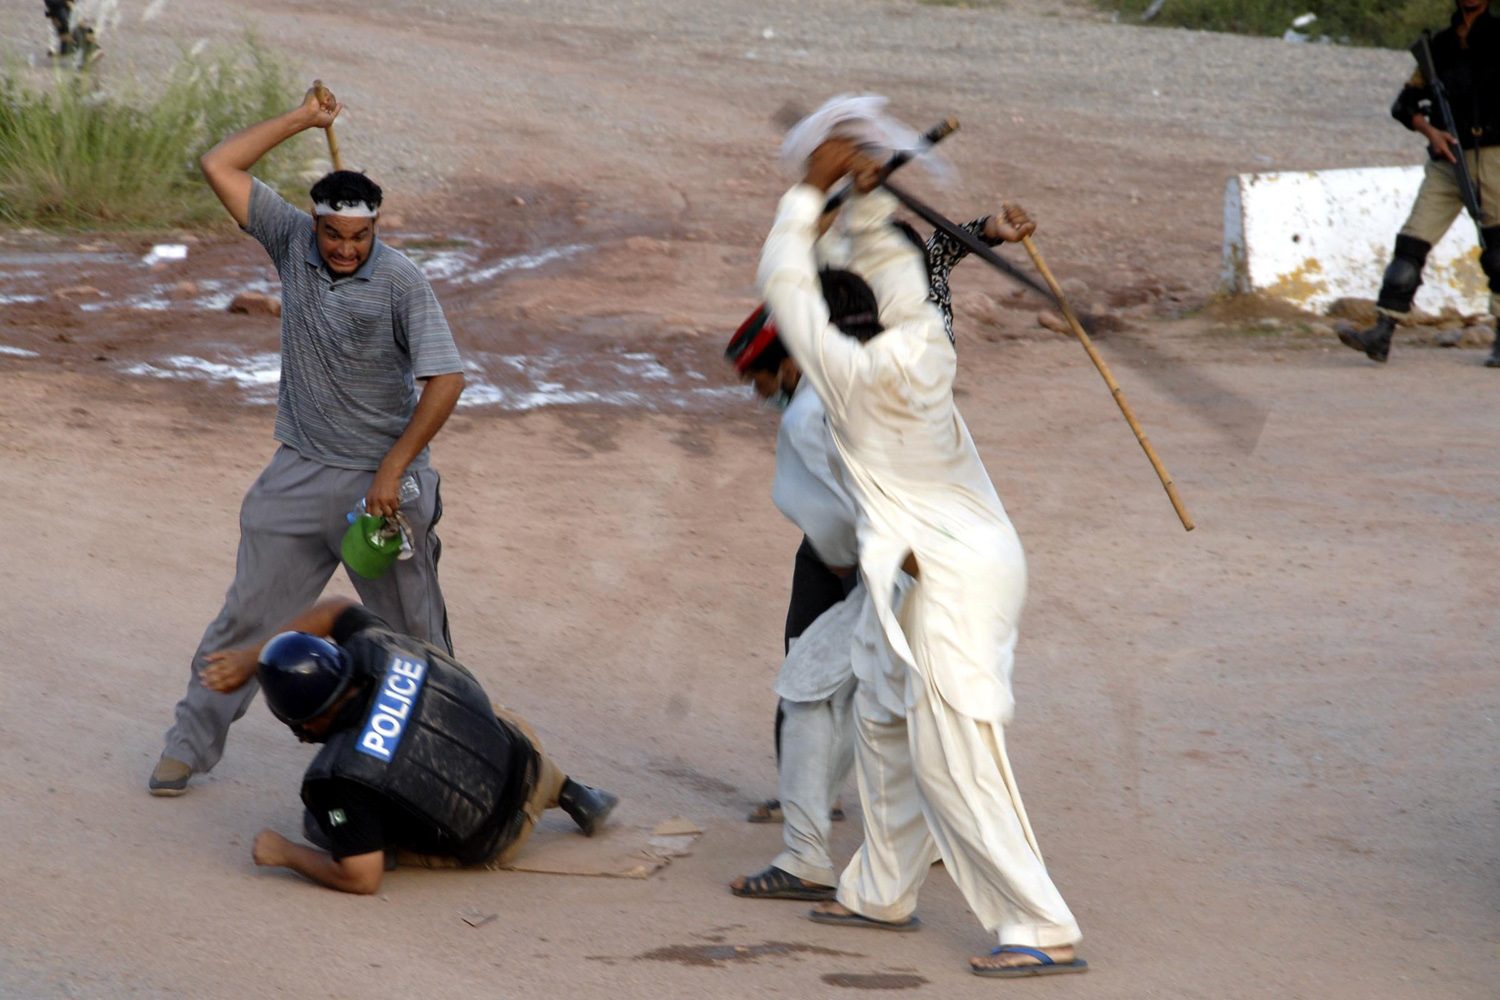 Sept. 1, 2014. Supporters of Imran Khan and Tahir-ul-Qadri, leader of Pakistan Awami Tehreek (PAT), attack Pakistani security forces' during the ongoing anti-government protests in Islamabad, Pakistan.